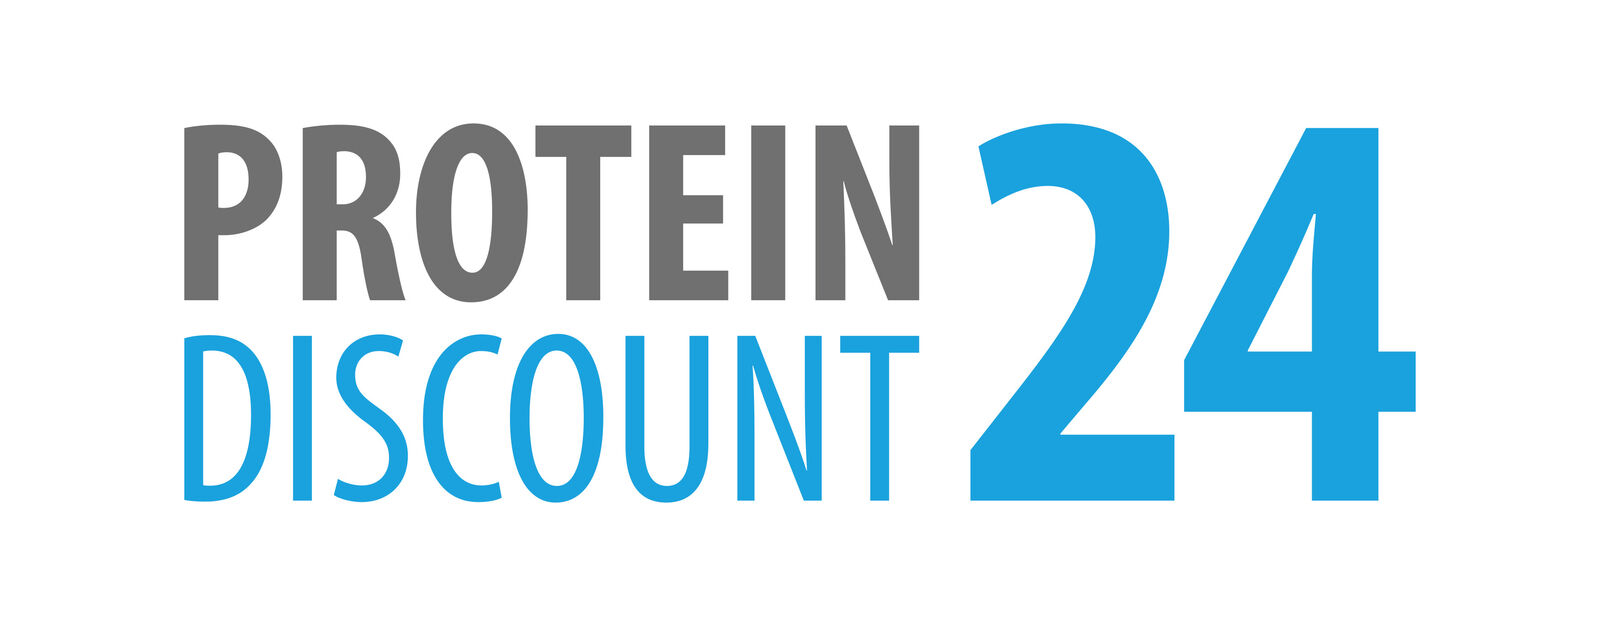 Proteindiscount24